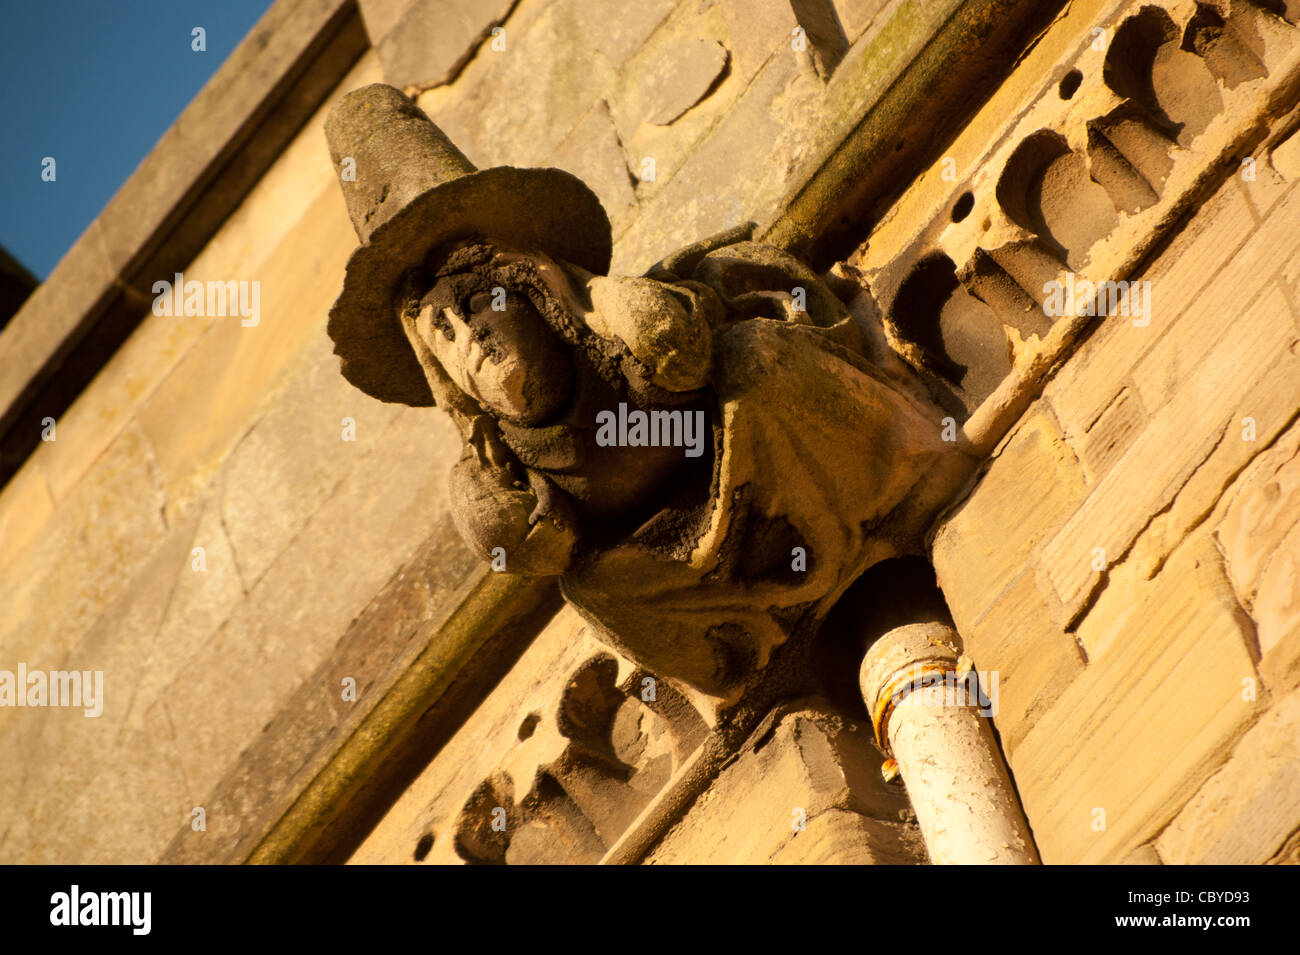 Old Welsh Woman carved gargoyle on the exterior of Old College, Aberystwyth University, Wales UK - Stock Image